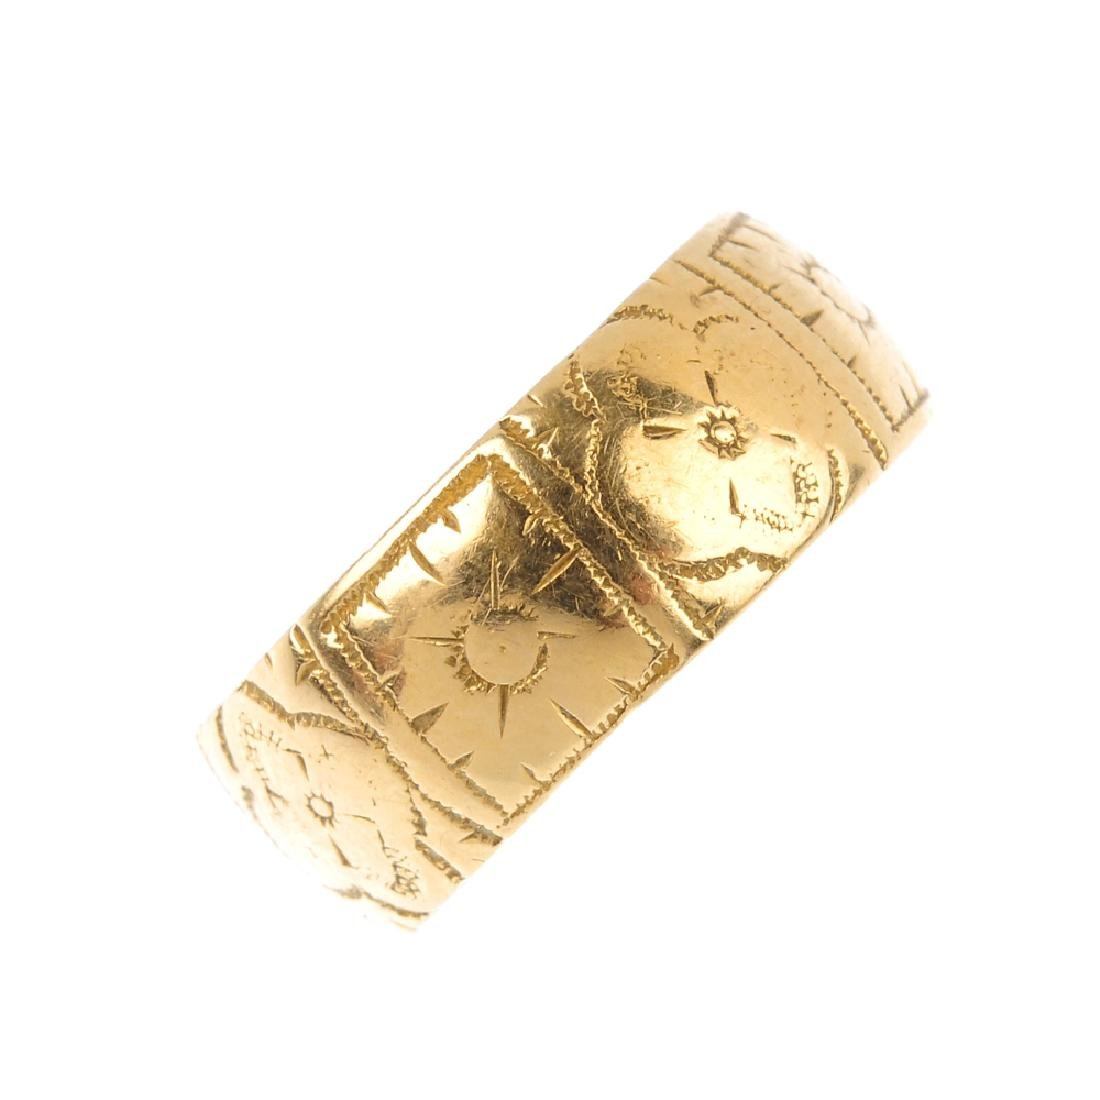 A late Victorian 18ct gold band ring. Engraved with a